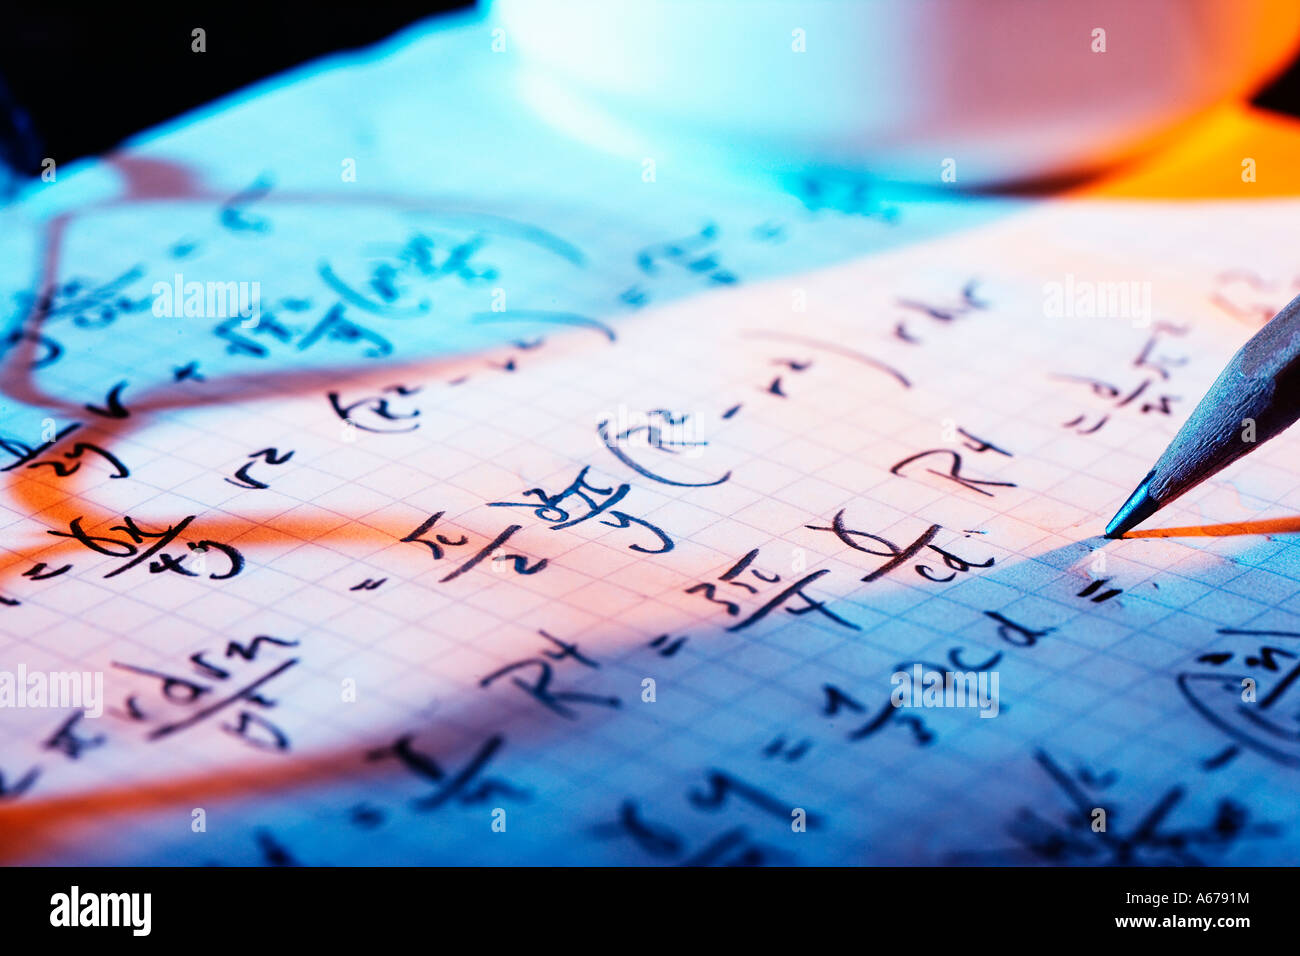 Page of mathematical equations with shadow of eye-glasses - Stock Image